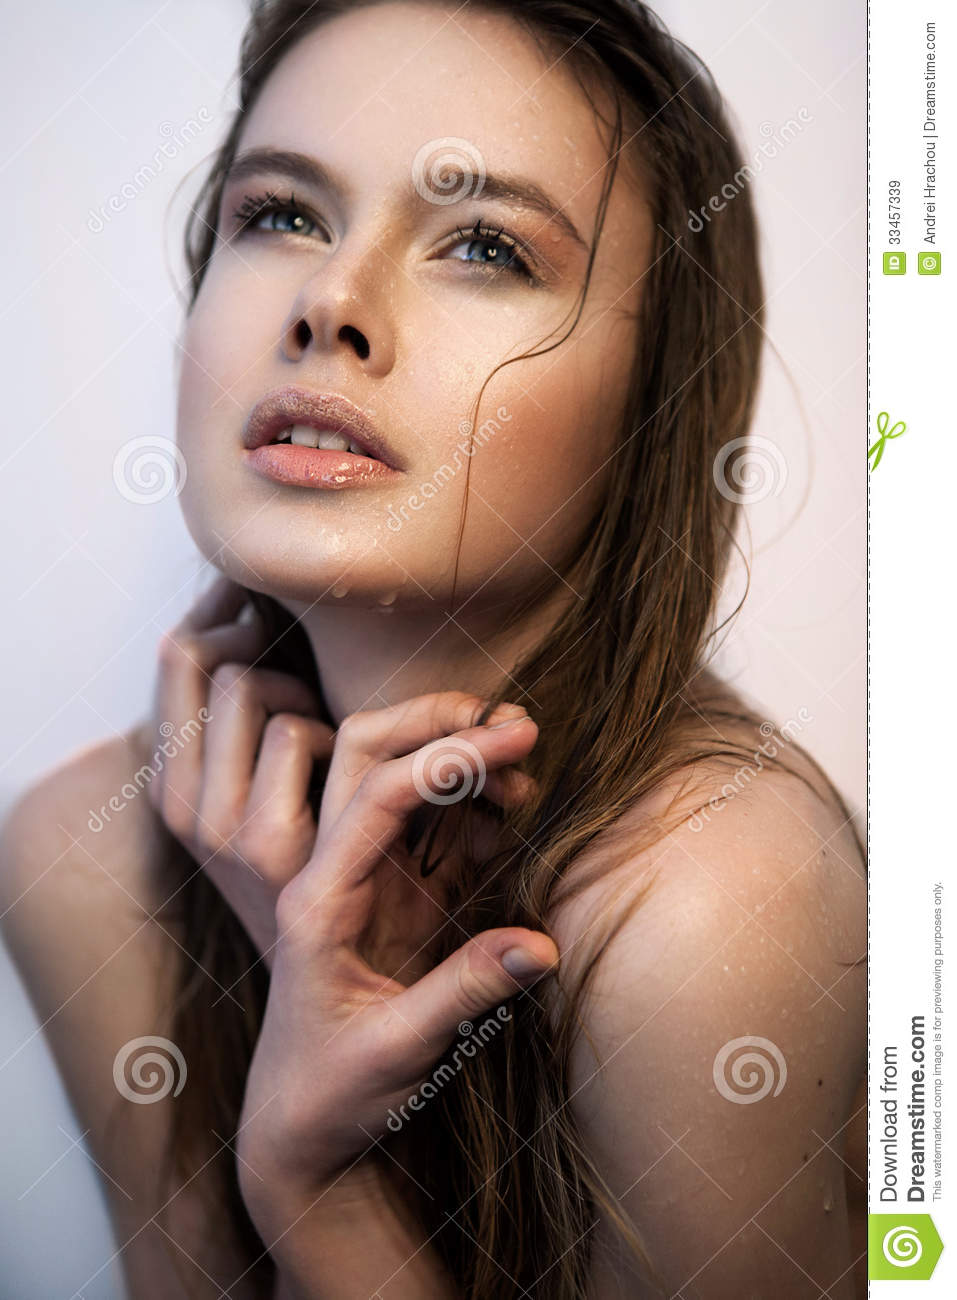 Teenage woman looking up